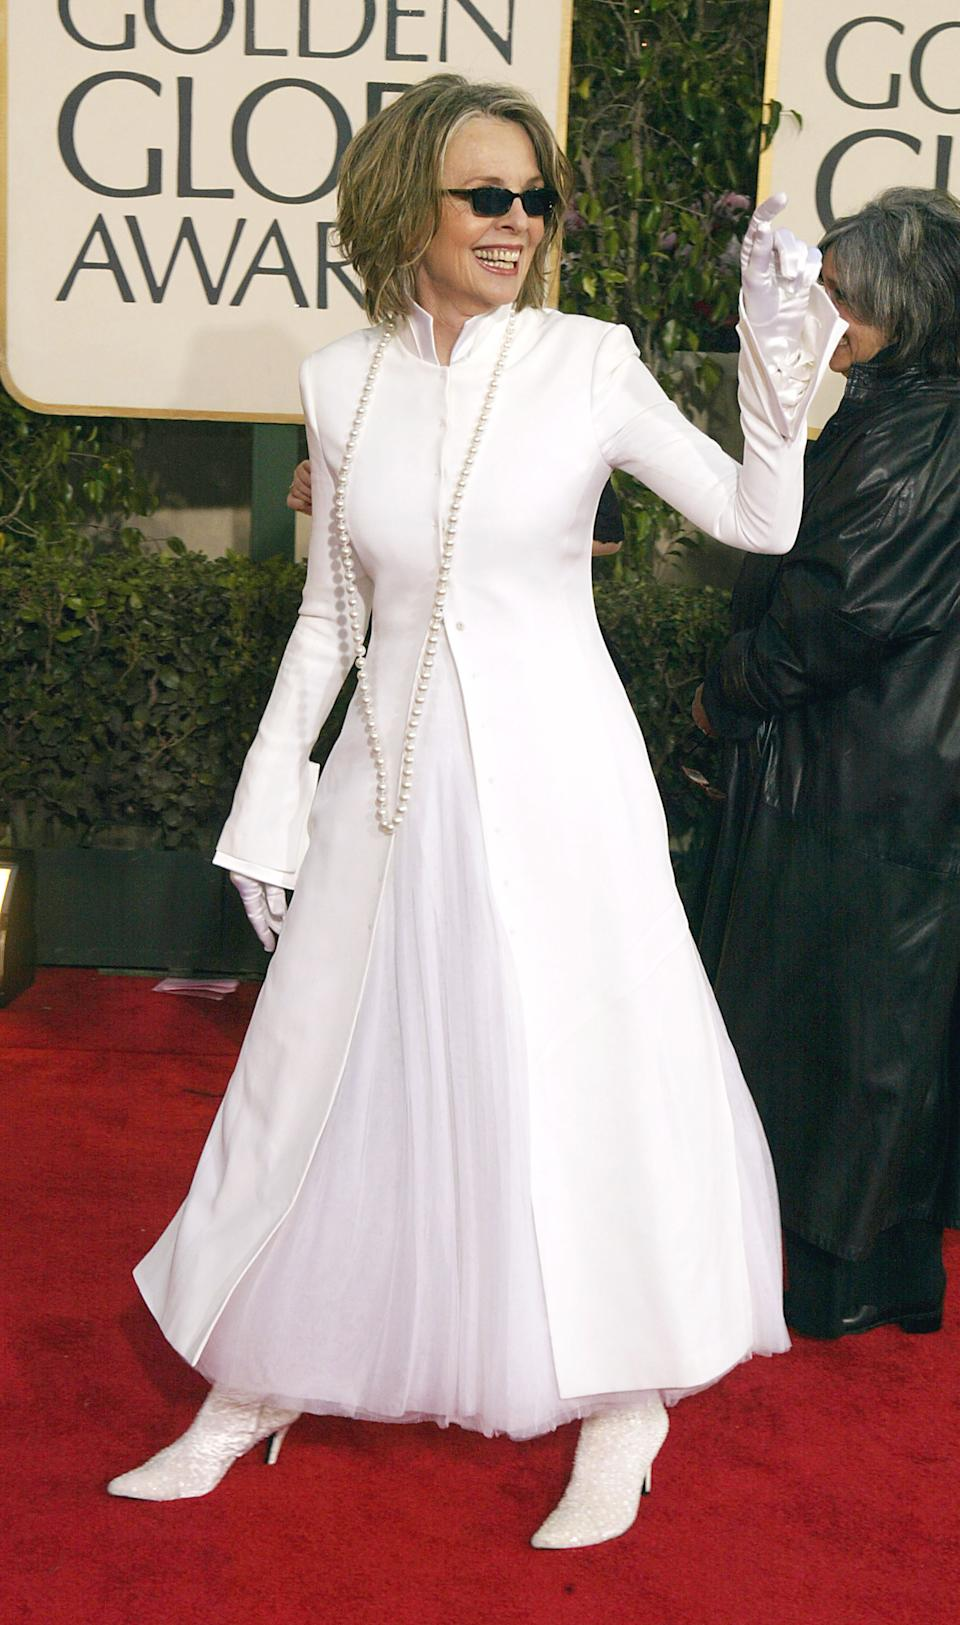 """<p>Diane Keaton may have taken home the prize for Best Performance by an Actress in a Motion Picture - Musical or Comedy for her role in """"Something's Gotta Give,"""" at the 2004 Golden Globes, but she also had to go home with the shame of knowing she wore a lab coat to one of the most prestigious award ceremonies in Hollywood. (Image via Getty Images)</p>"""